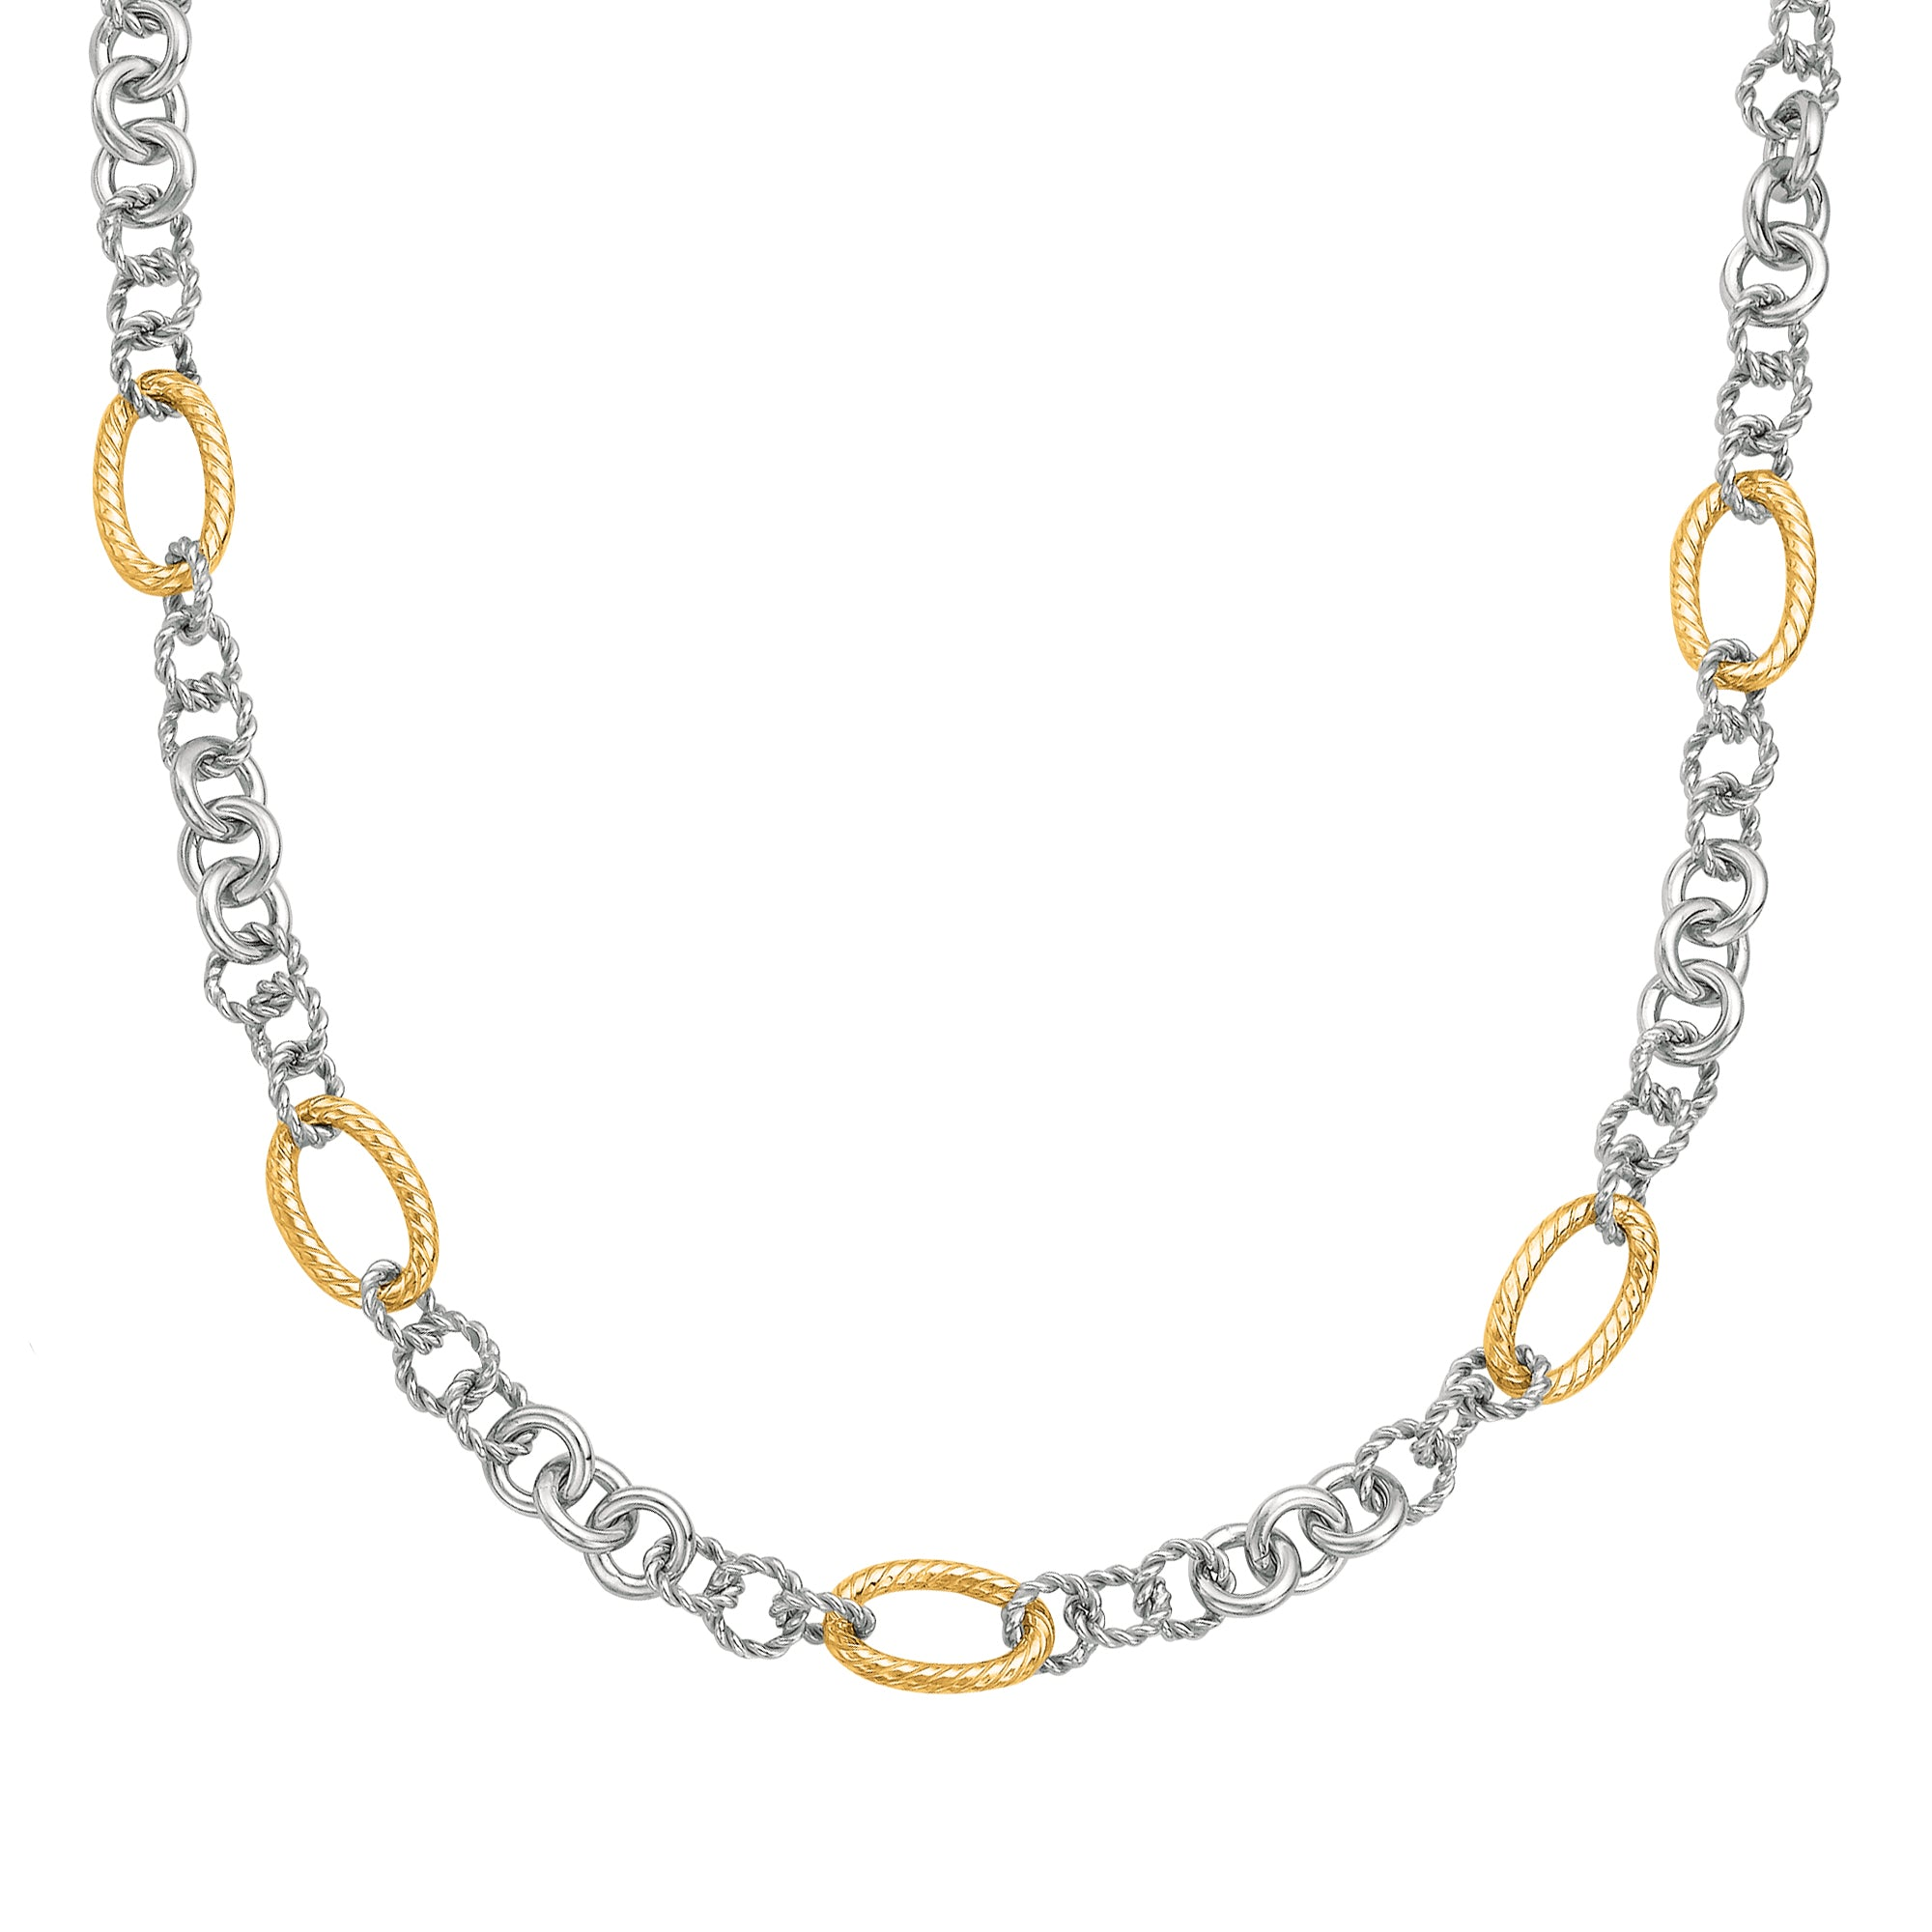 Phillip Gavriel 18K Yellow Gold & Sterling Silver Necklace